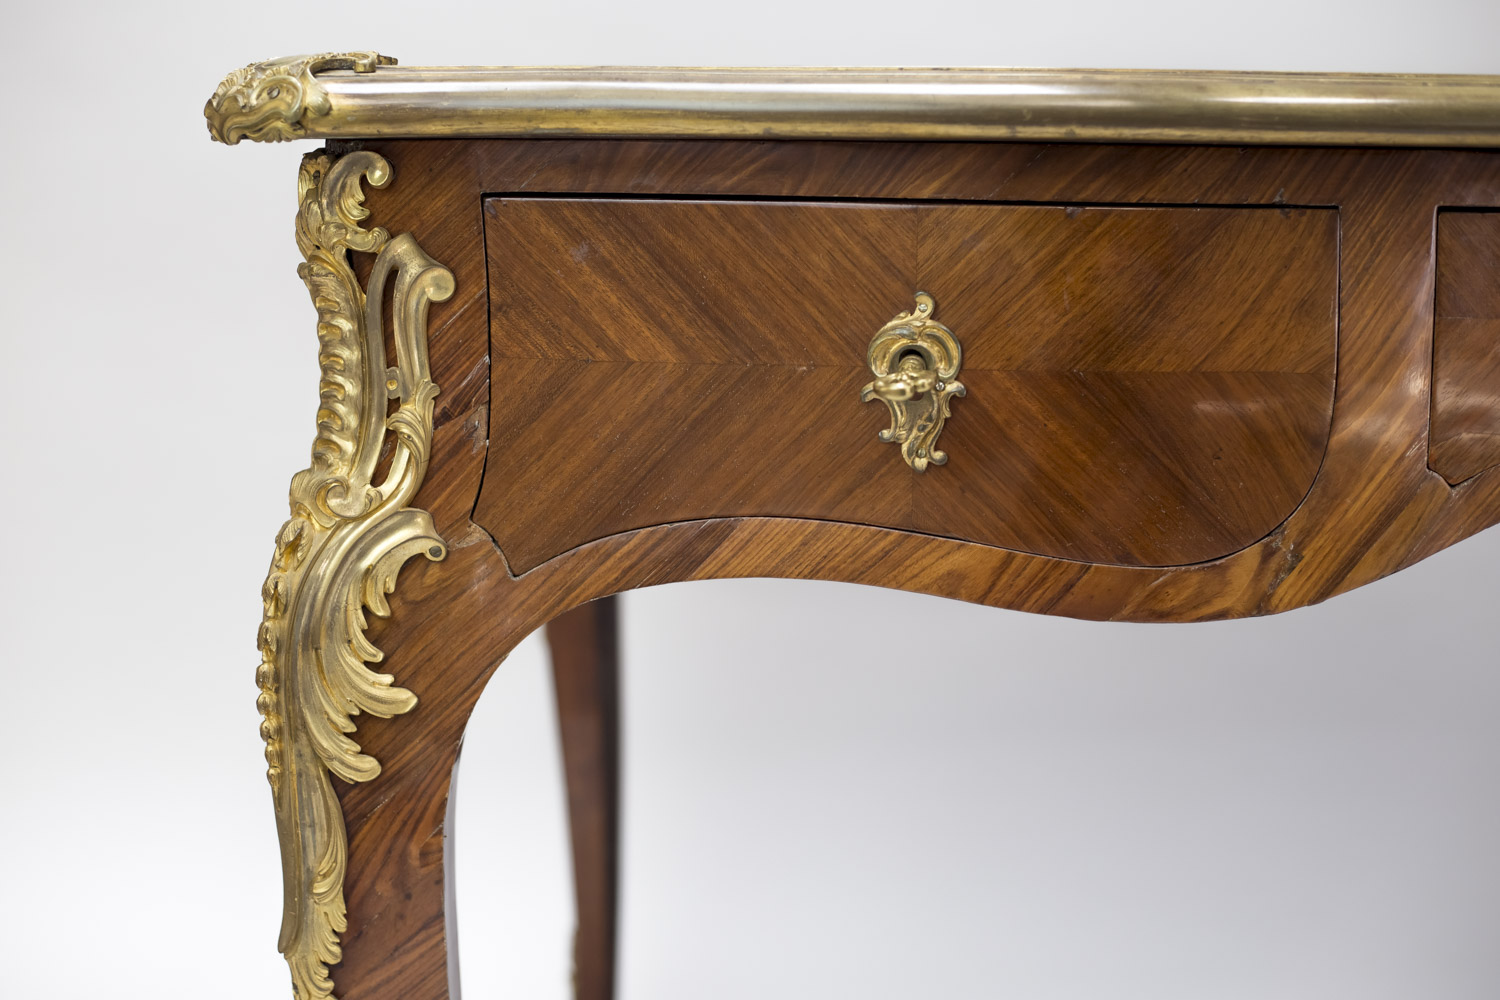 large louis xv style flat desk tulipwood marquetry late 19th century